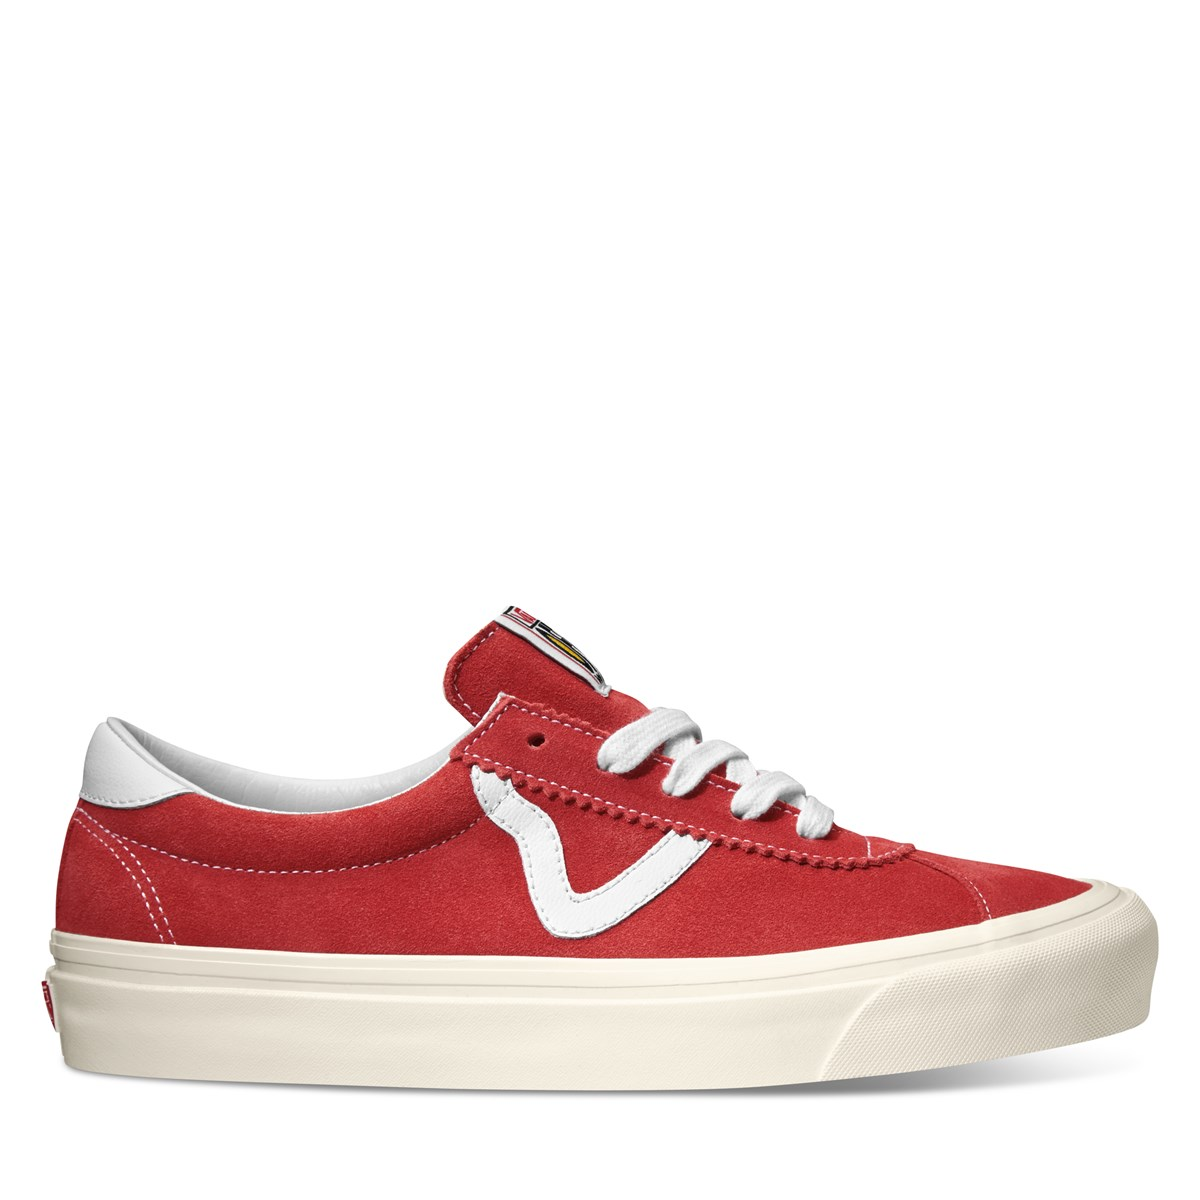 Style 73 DC Anaheim Factory Sneakers in Red